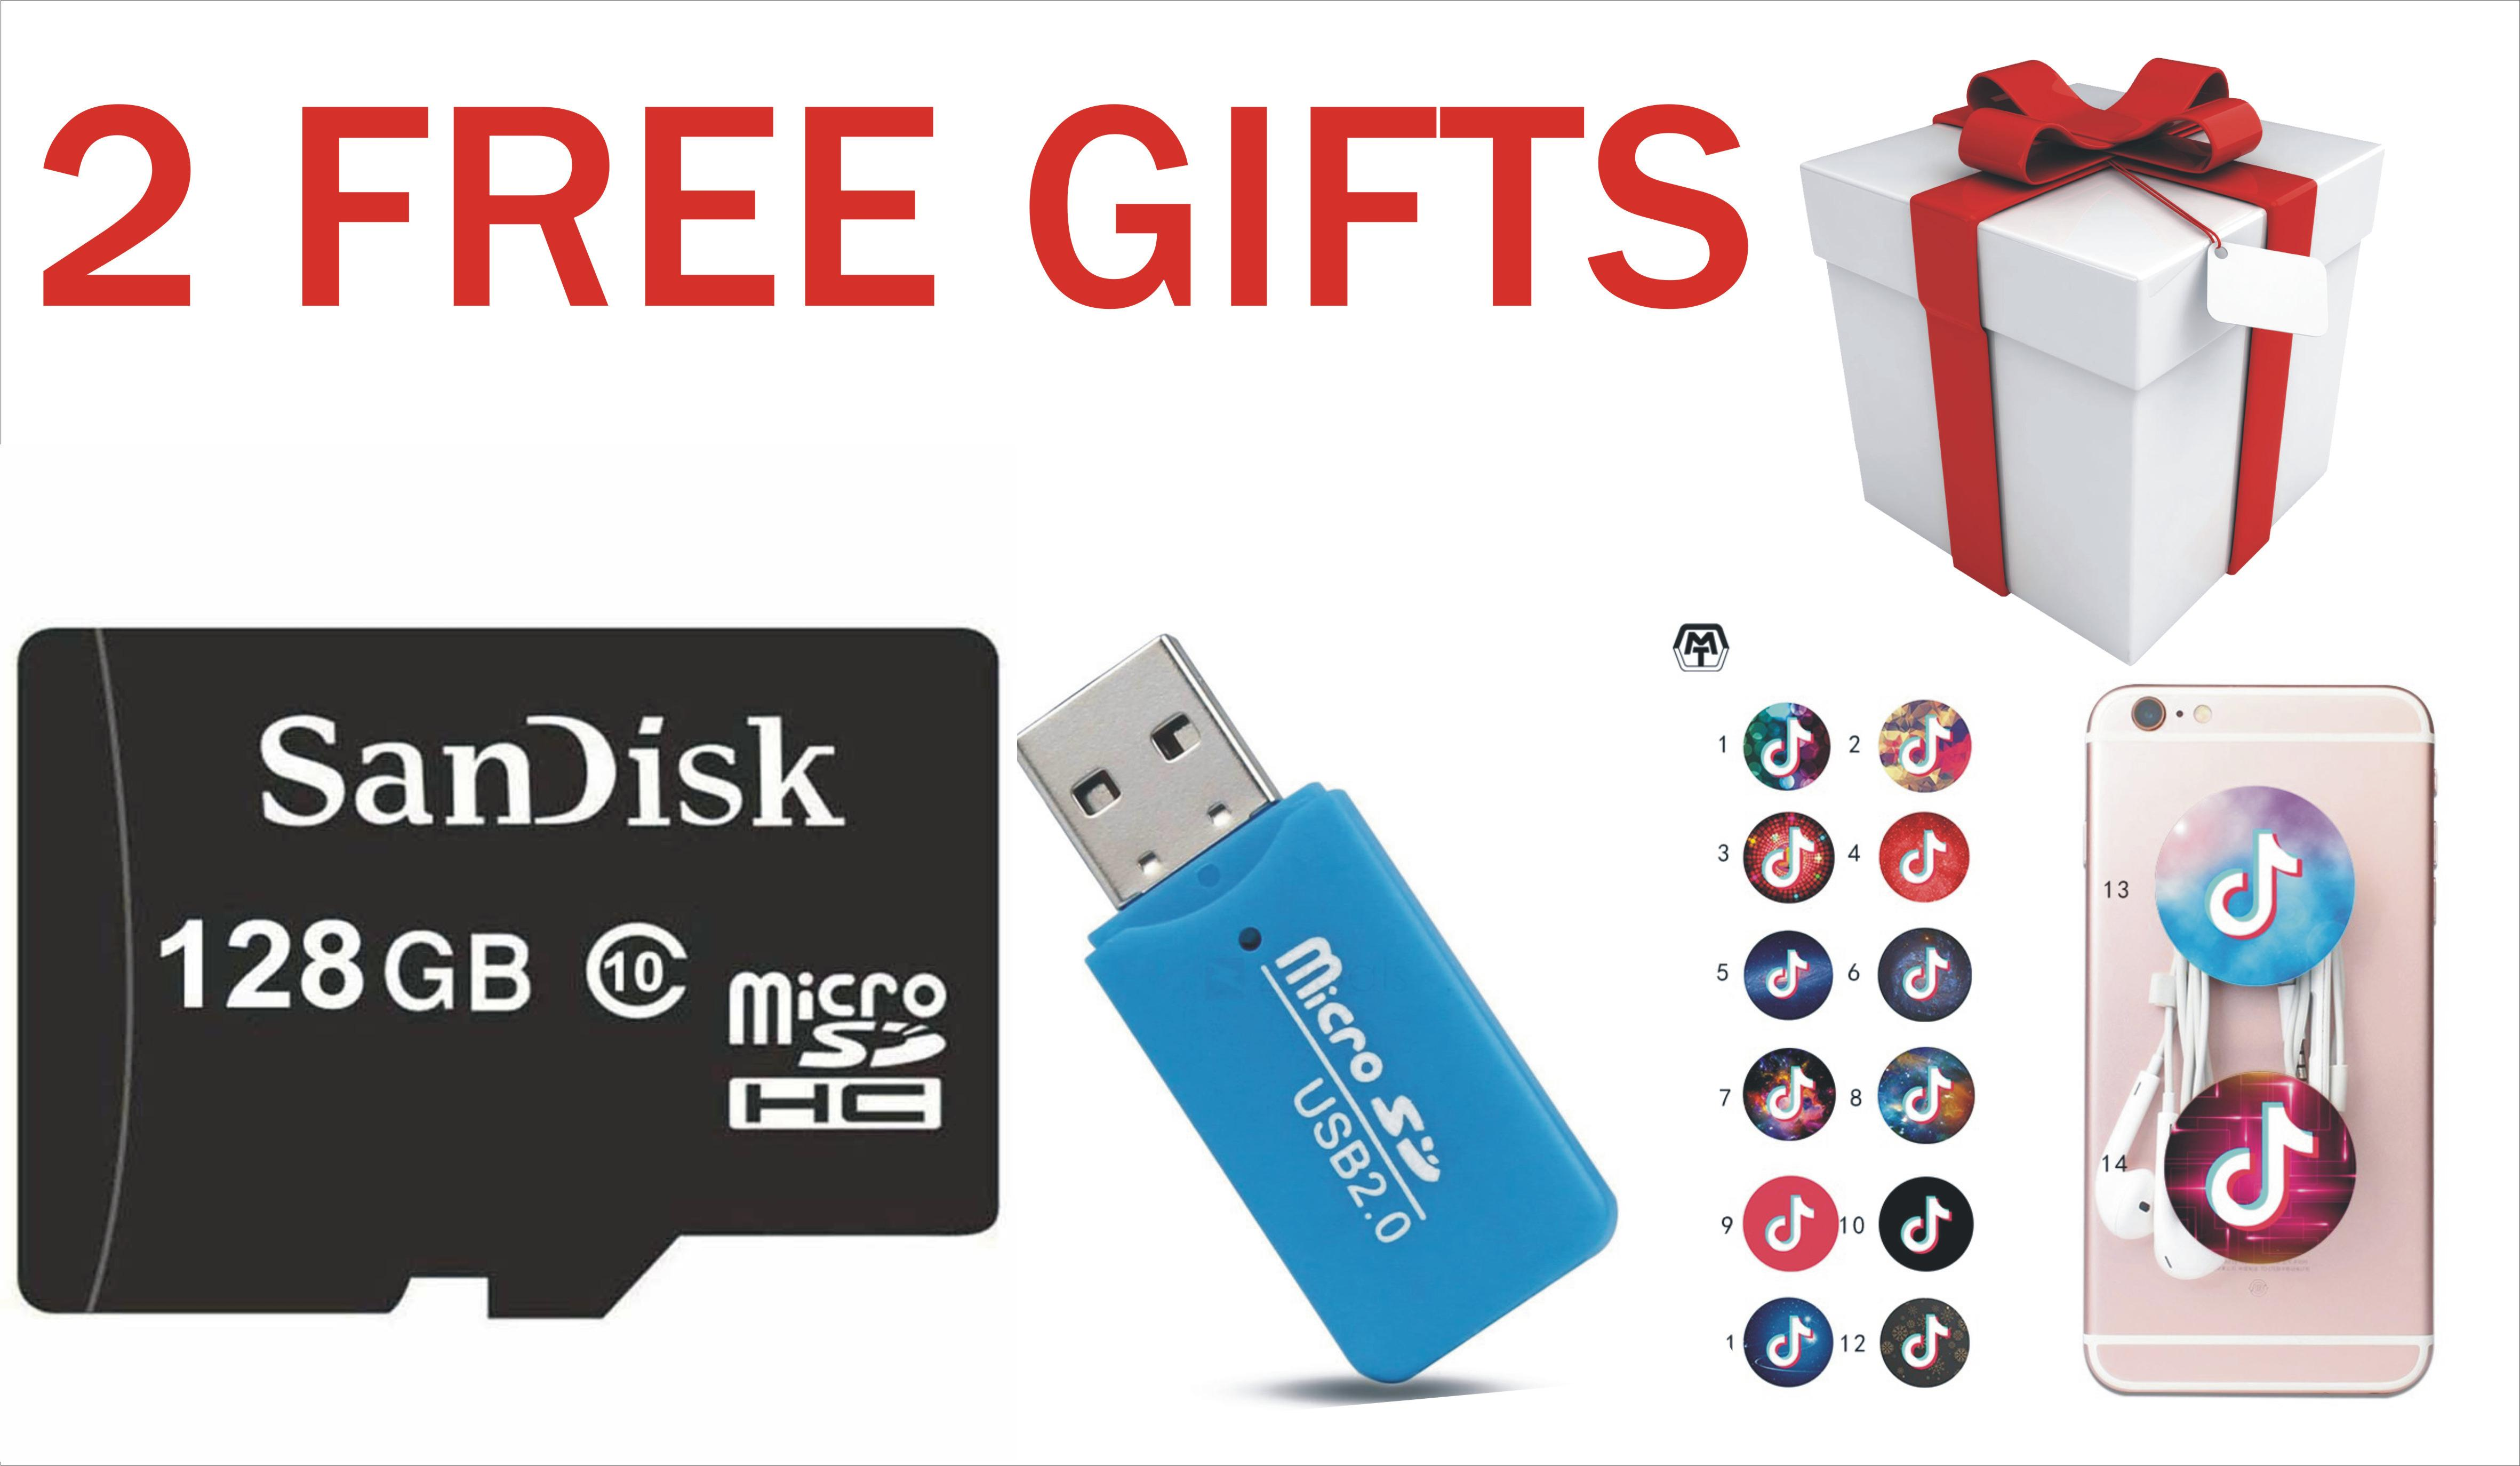 128 Gb sd card with 2 free gifts popsocket and card reader(targets)